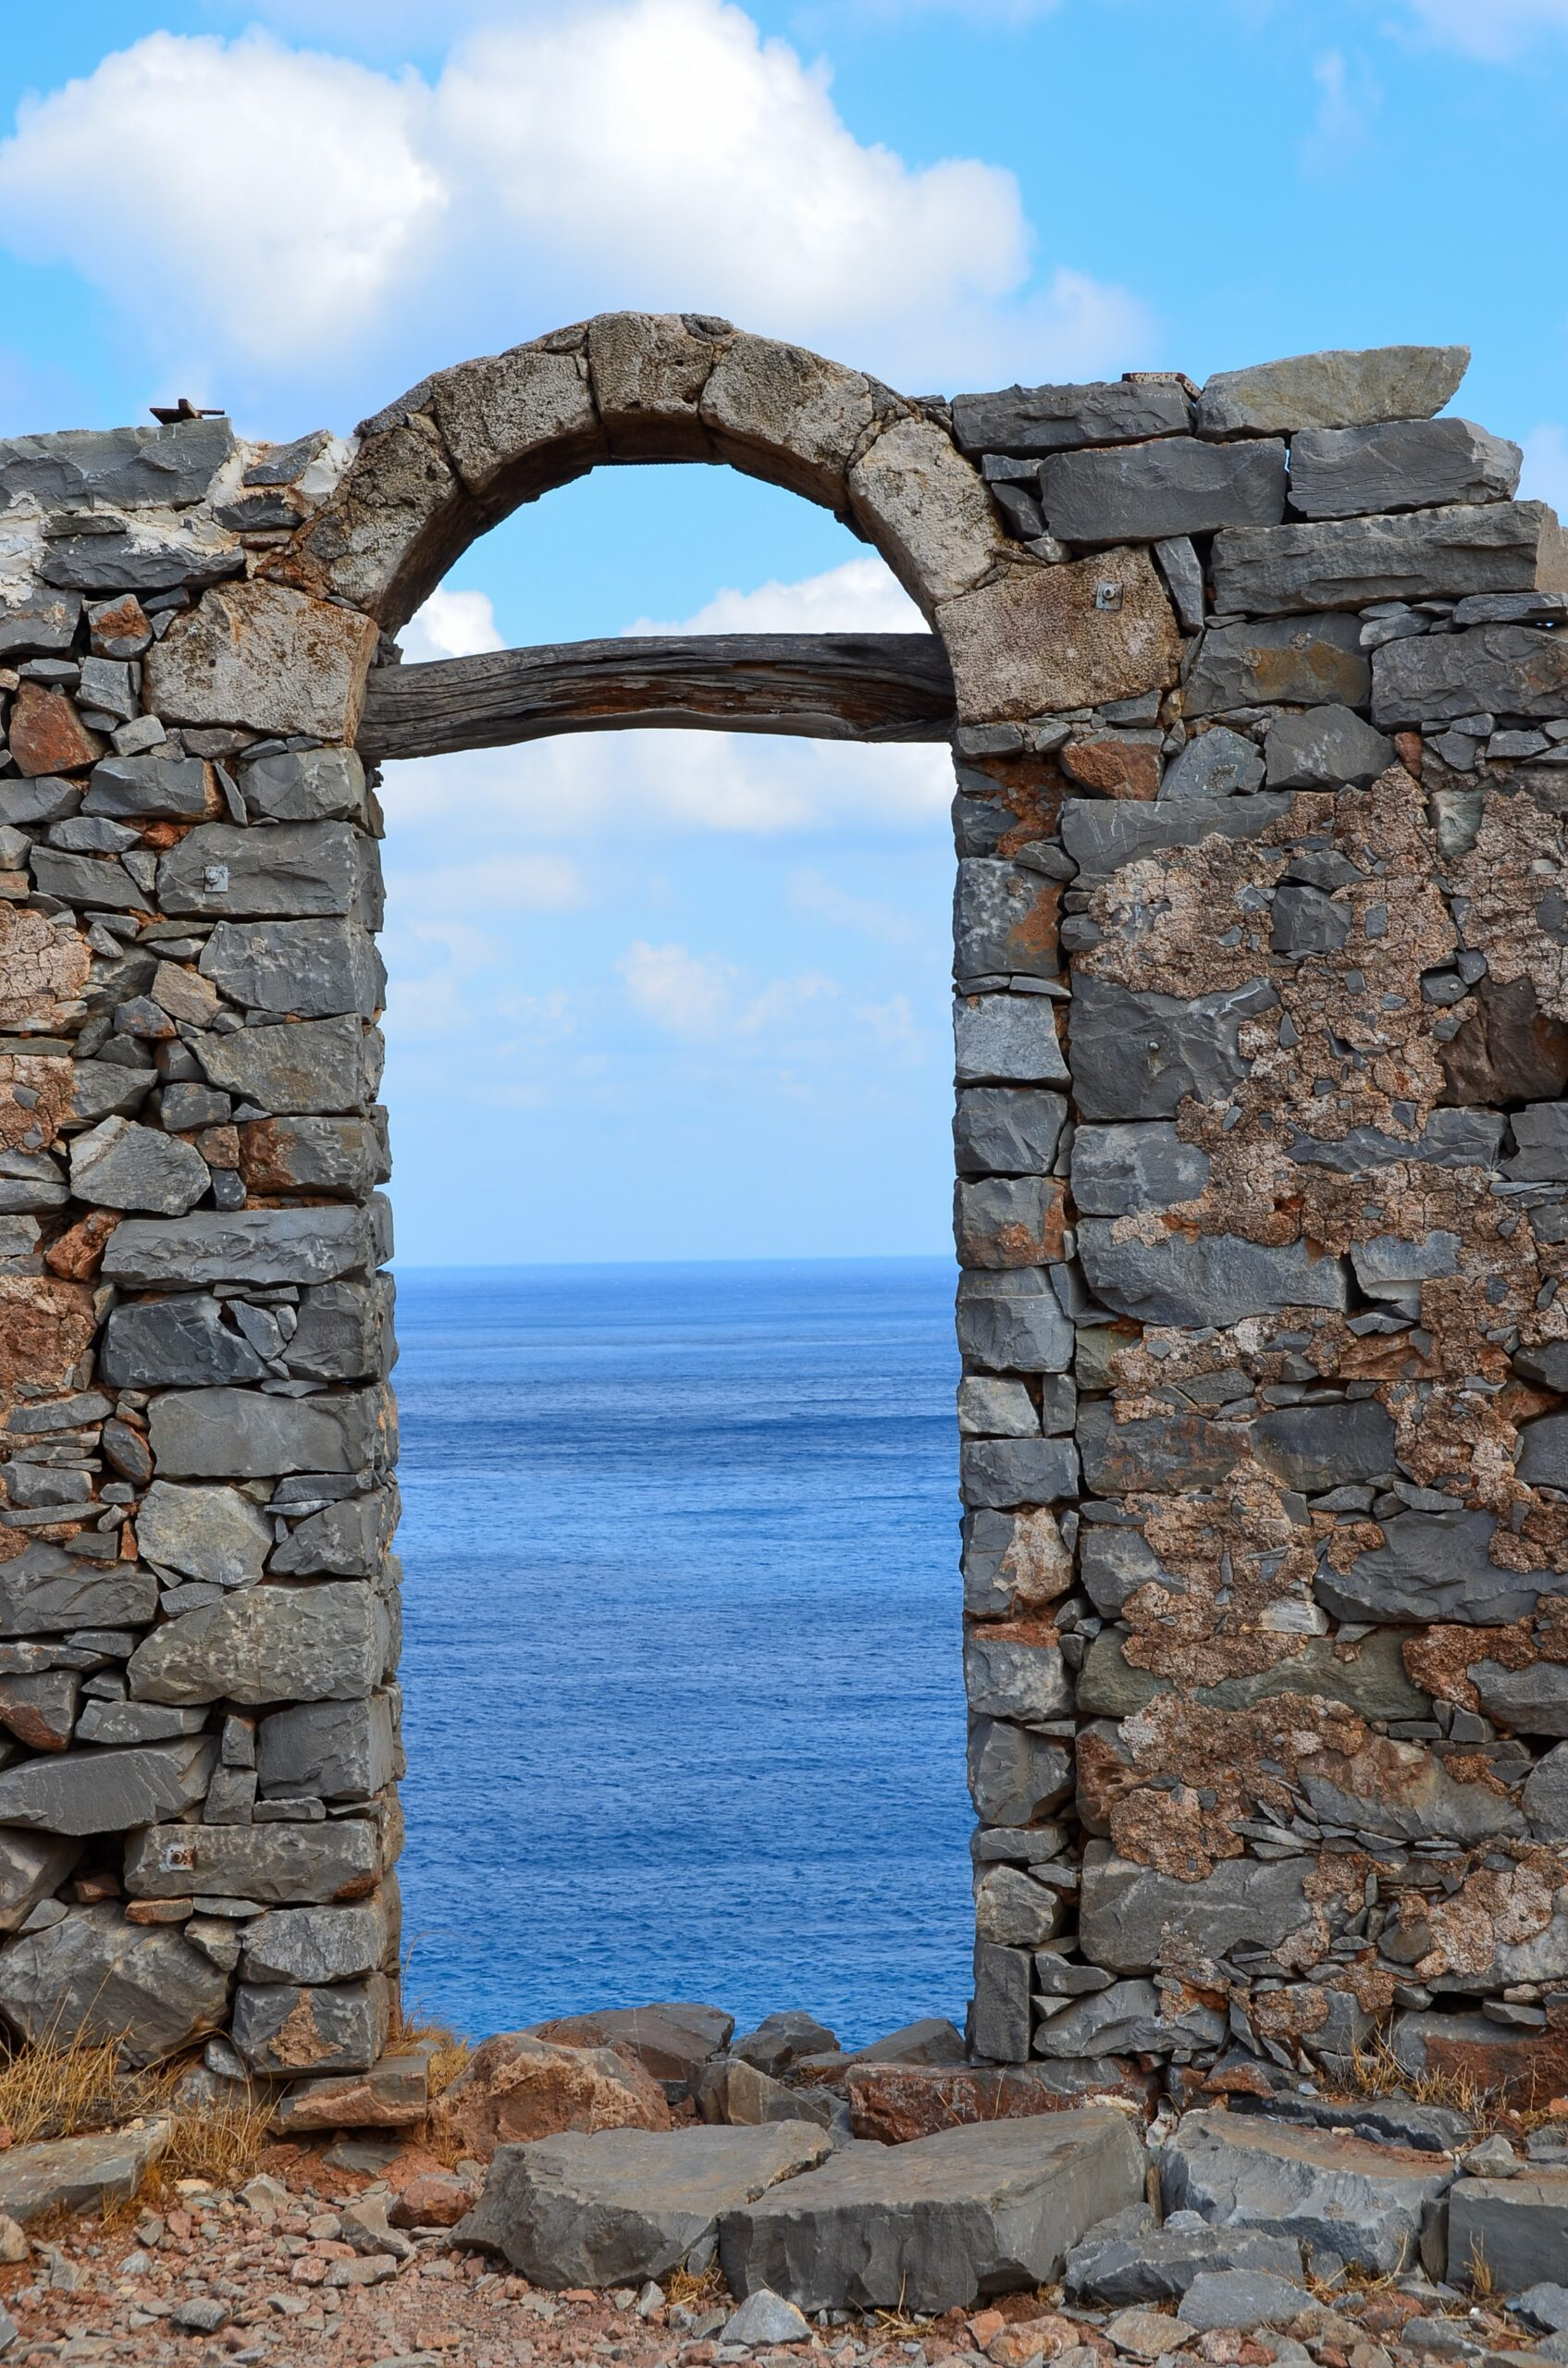 outside stone wall with entrance to the ocean